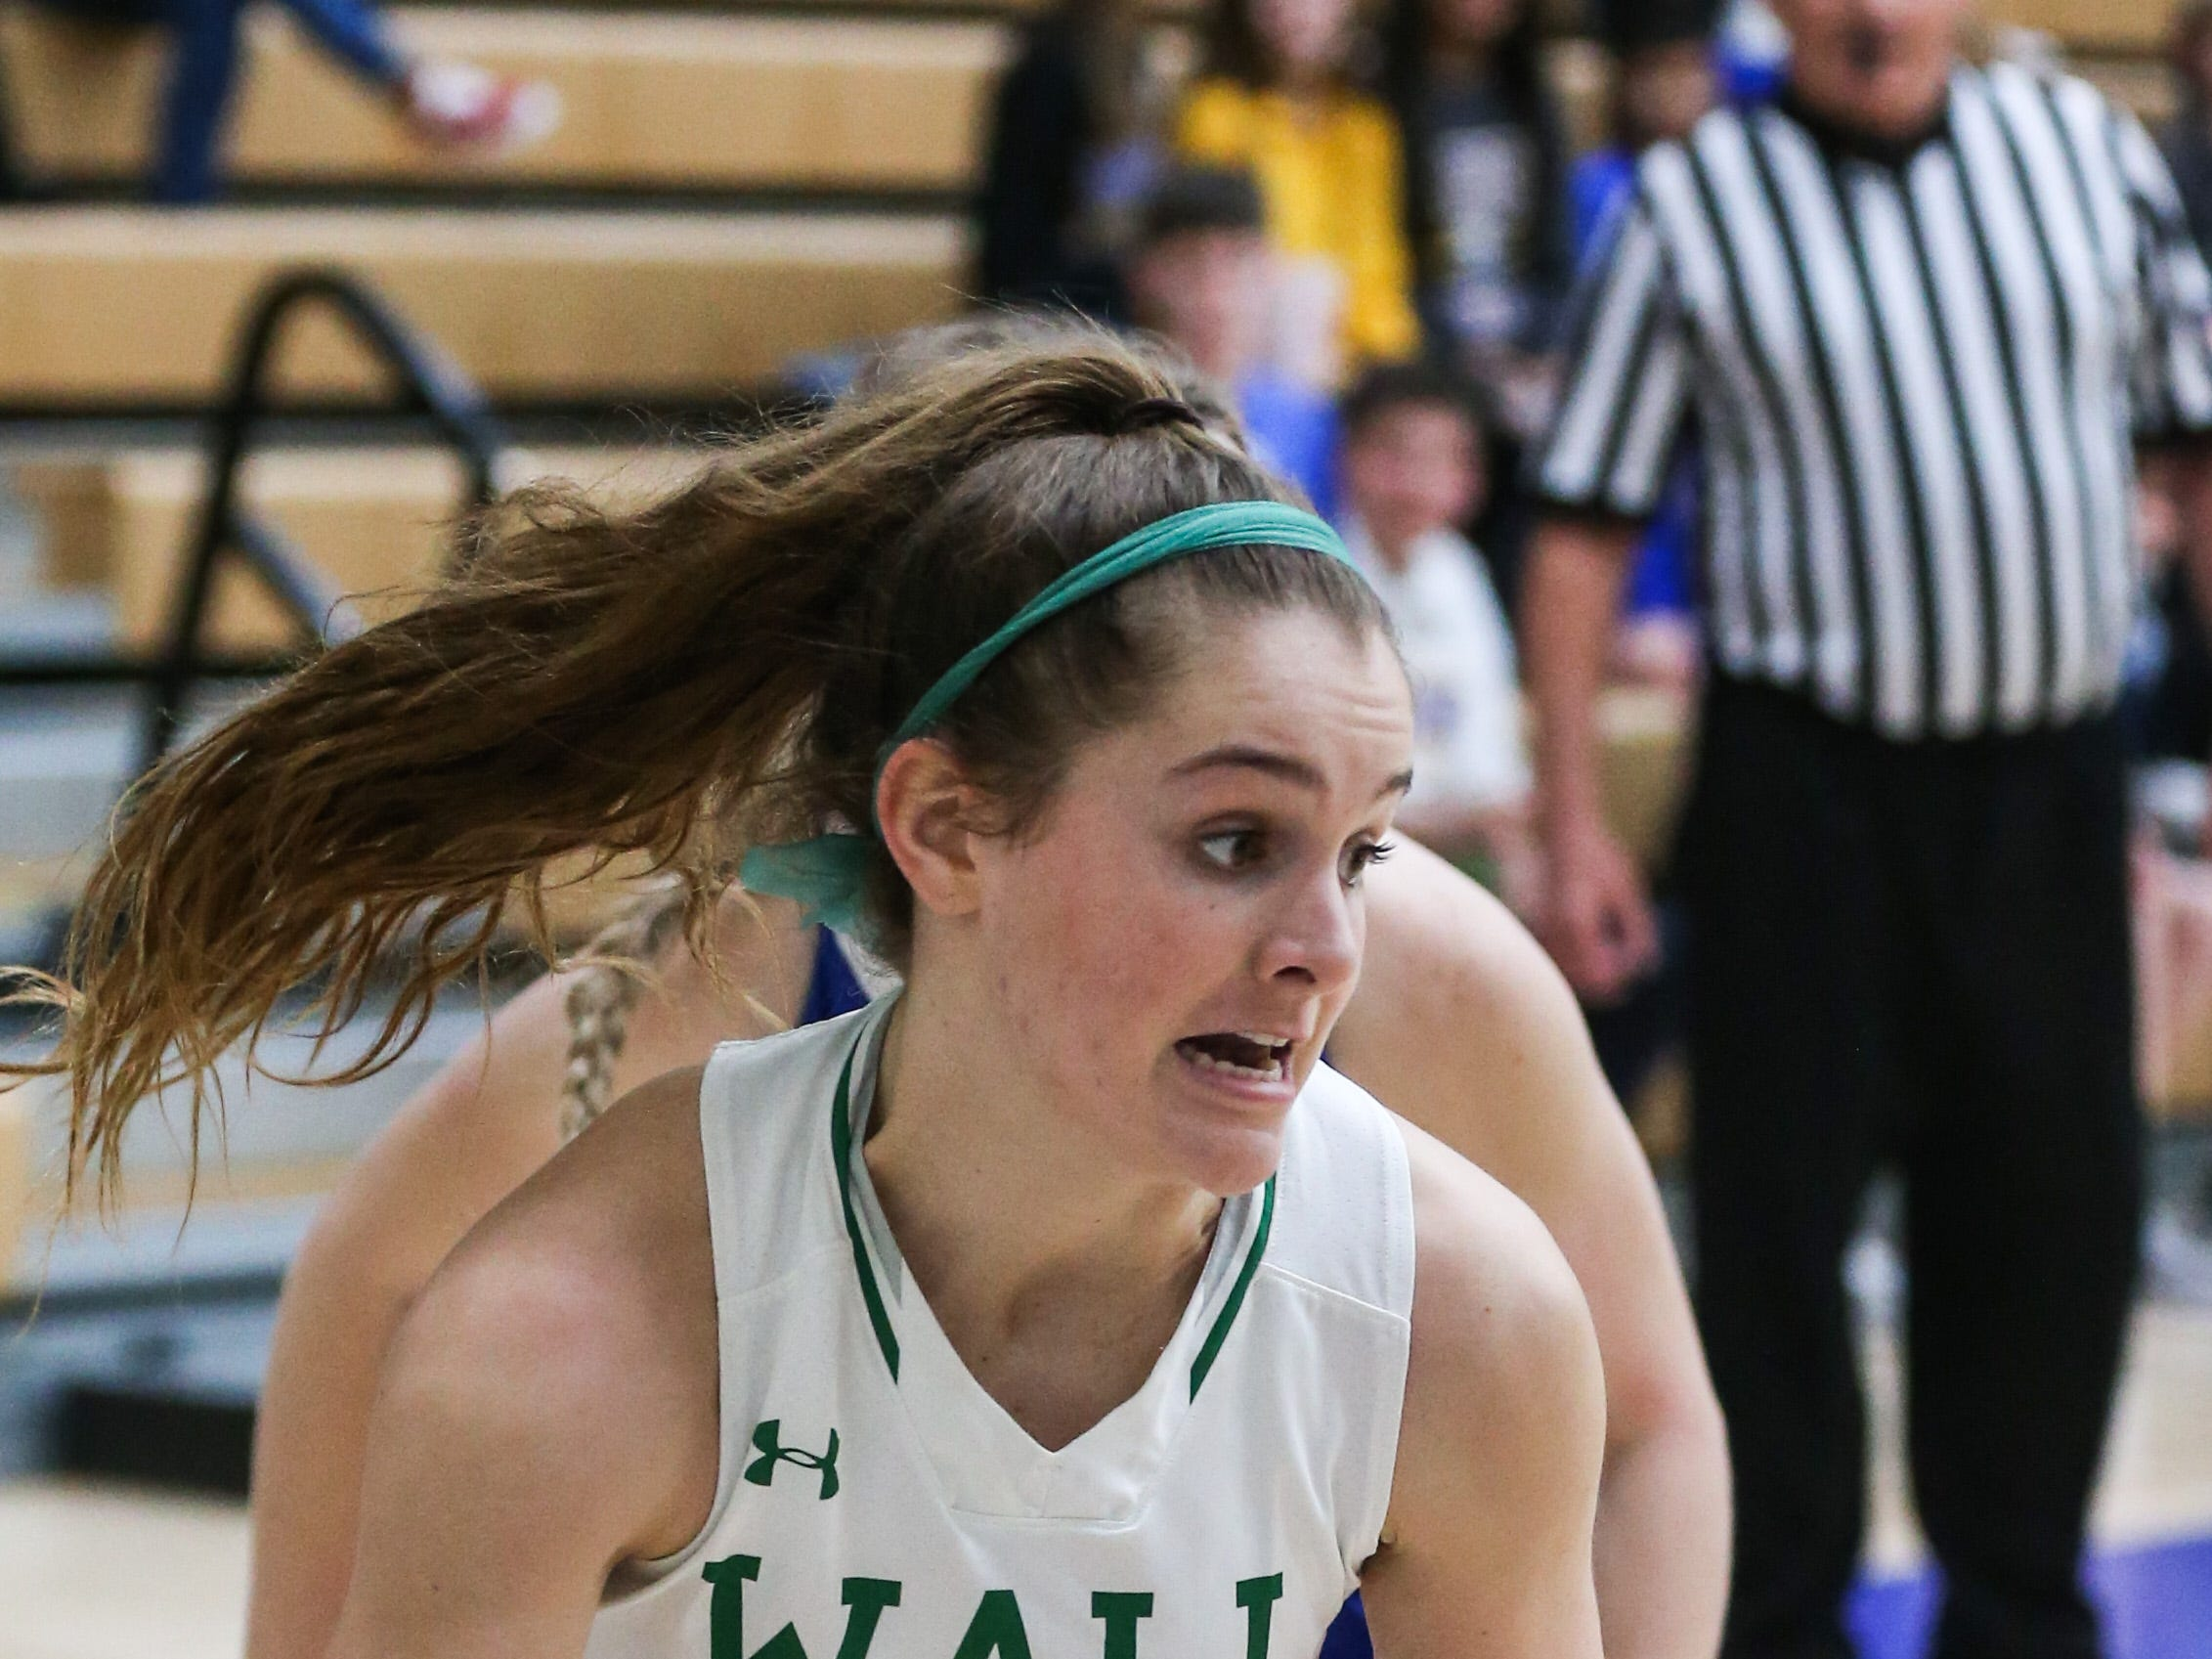 Wall's Kylie Phillips dribbles around Brock during the 1-3A regional tournament Friday, Feb. 22, 2019, at Wayland Baptist University in Plainview.